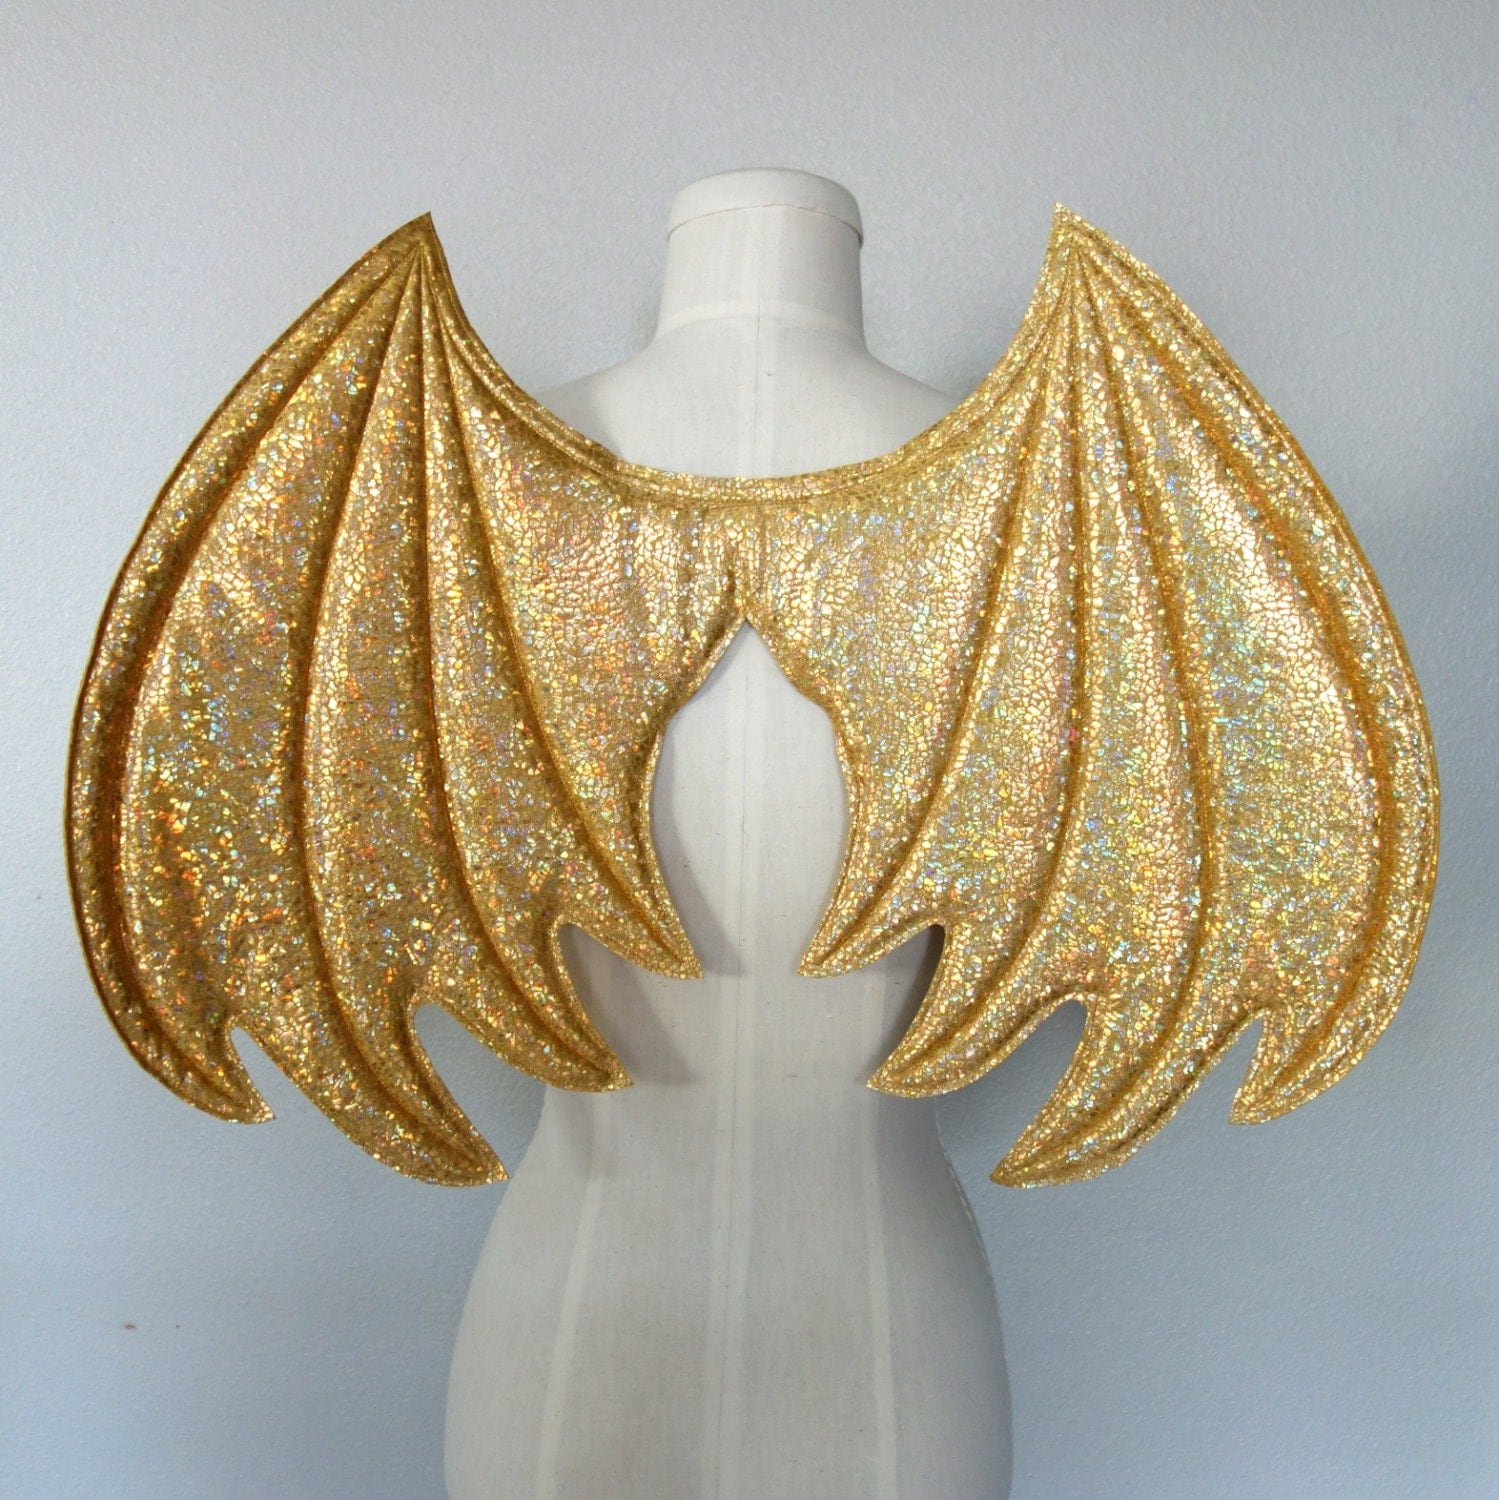 Gold Dragon Wings wireless wings costume dragon wings - photo#4